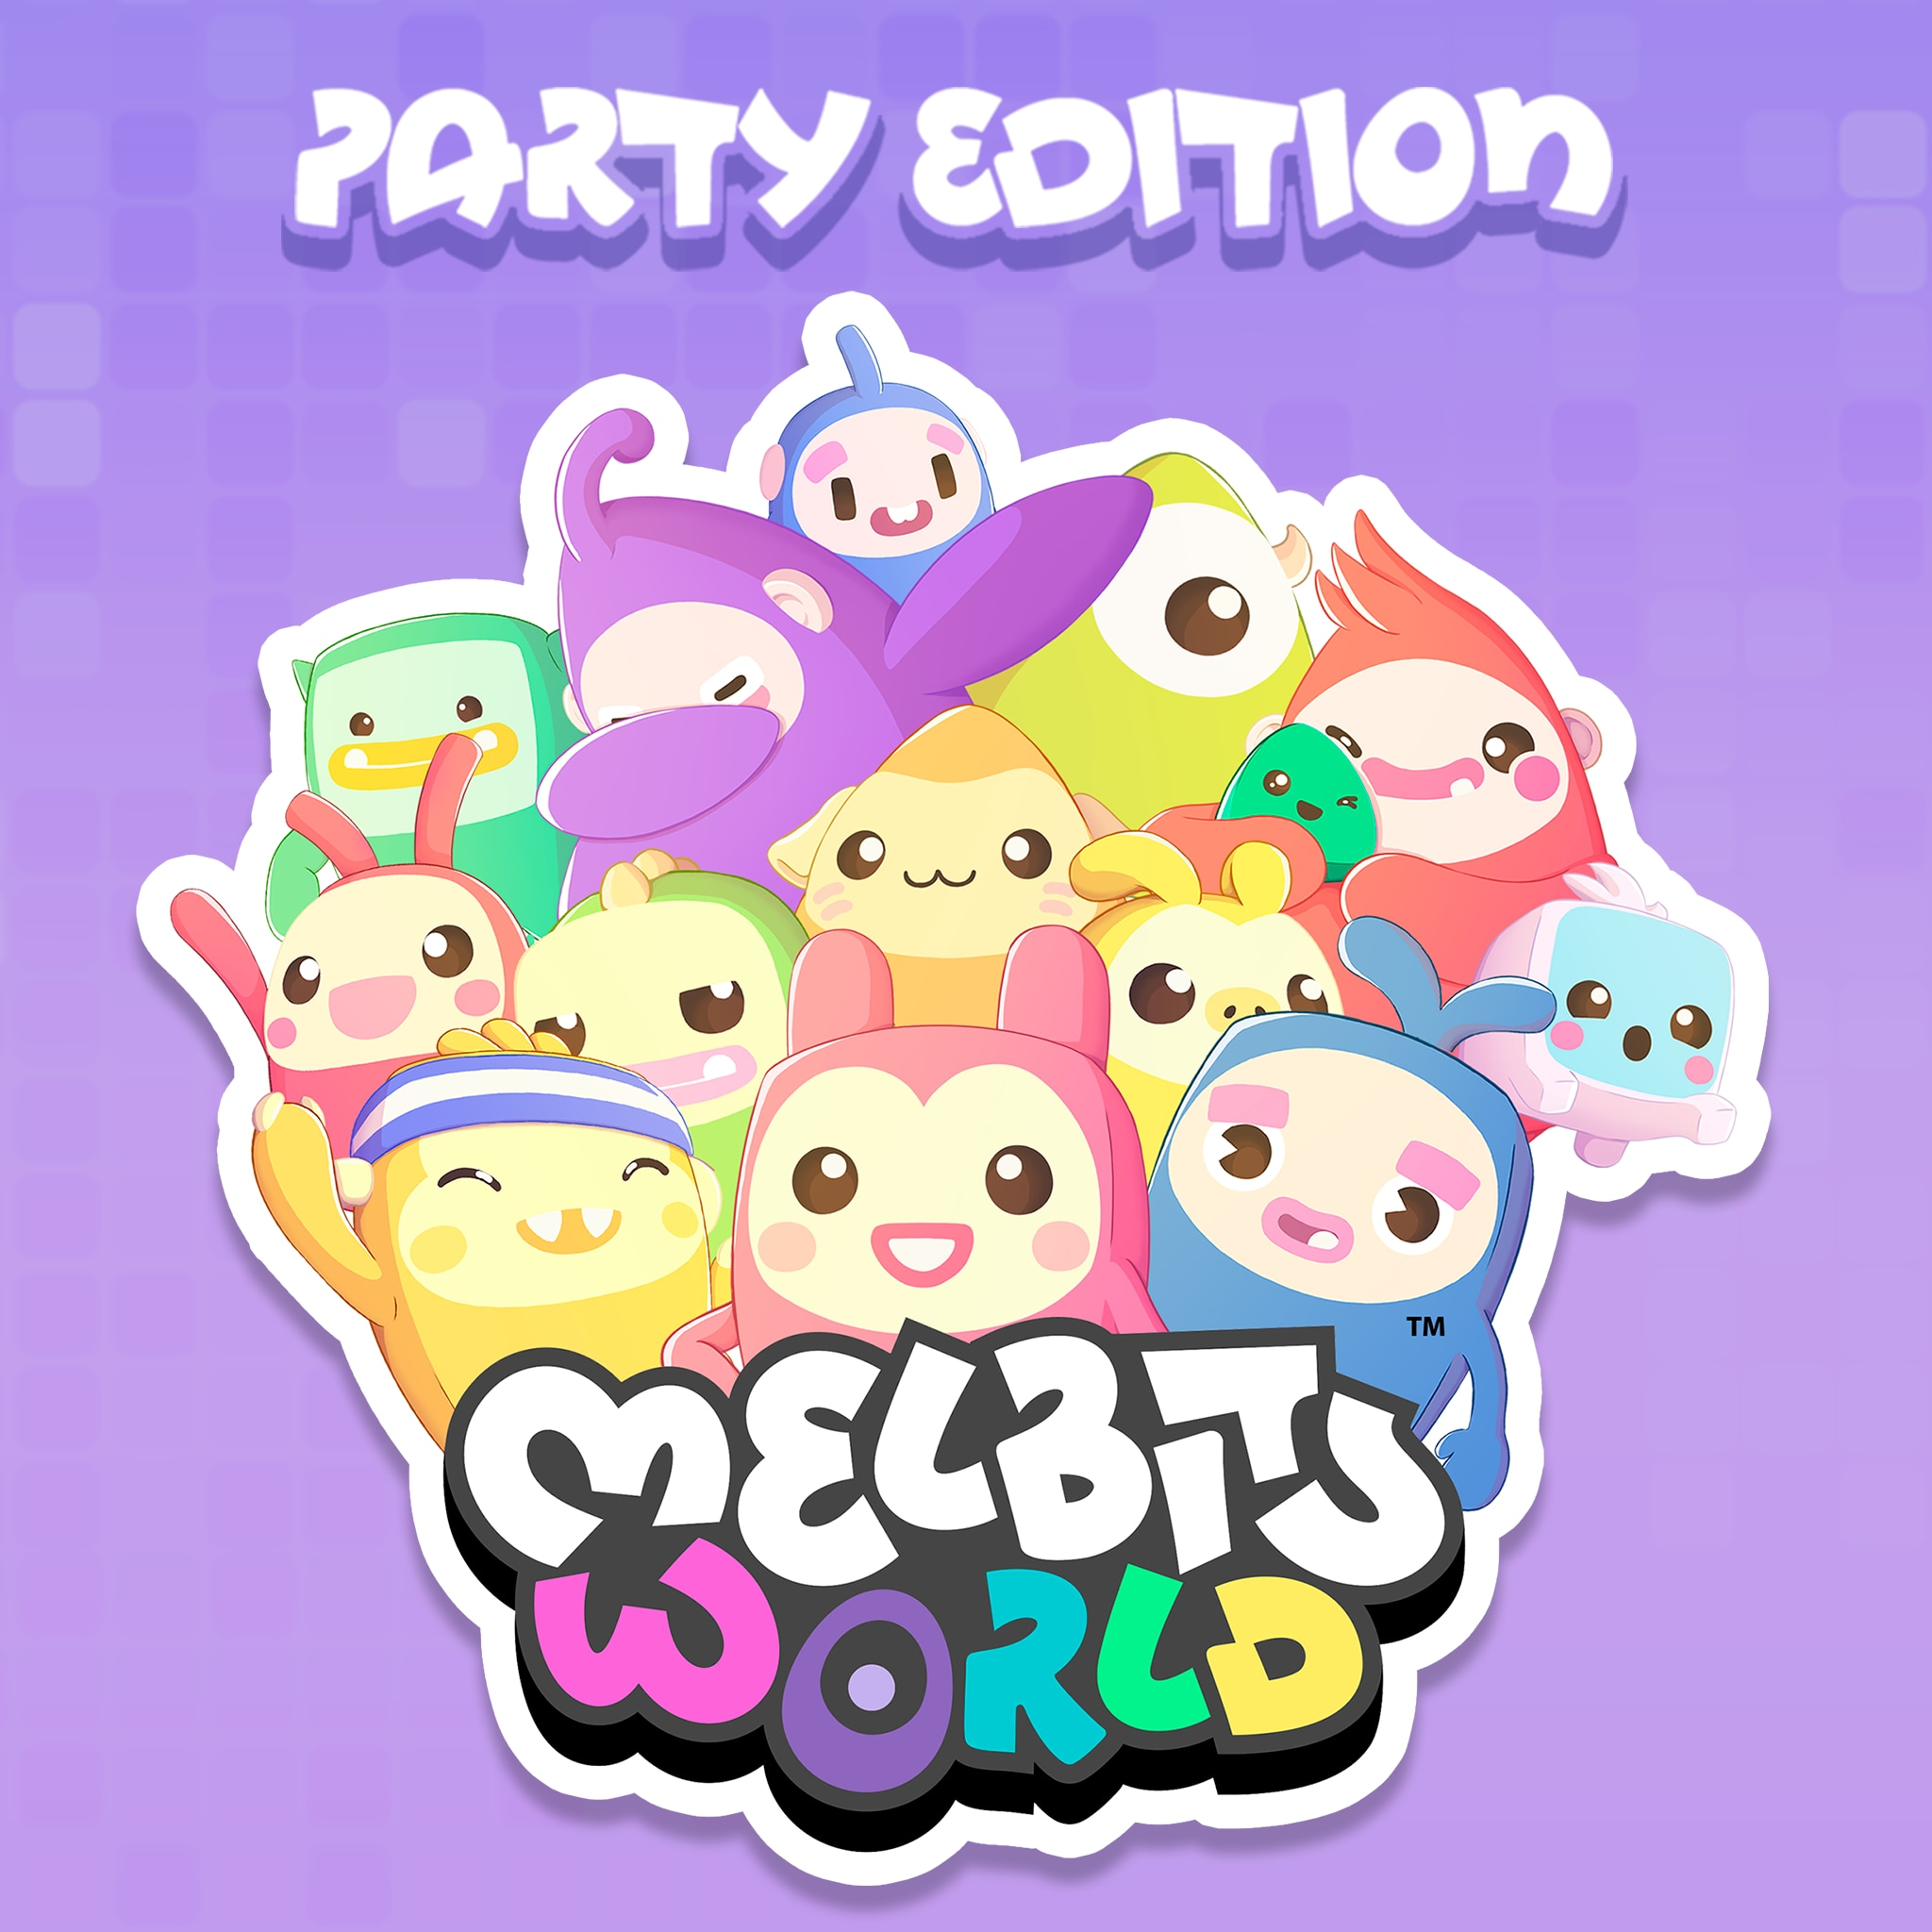 Melbits™ World Party Edition